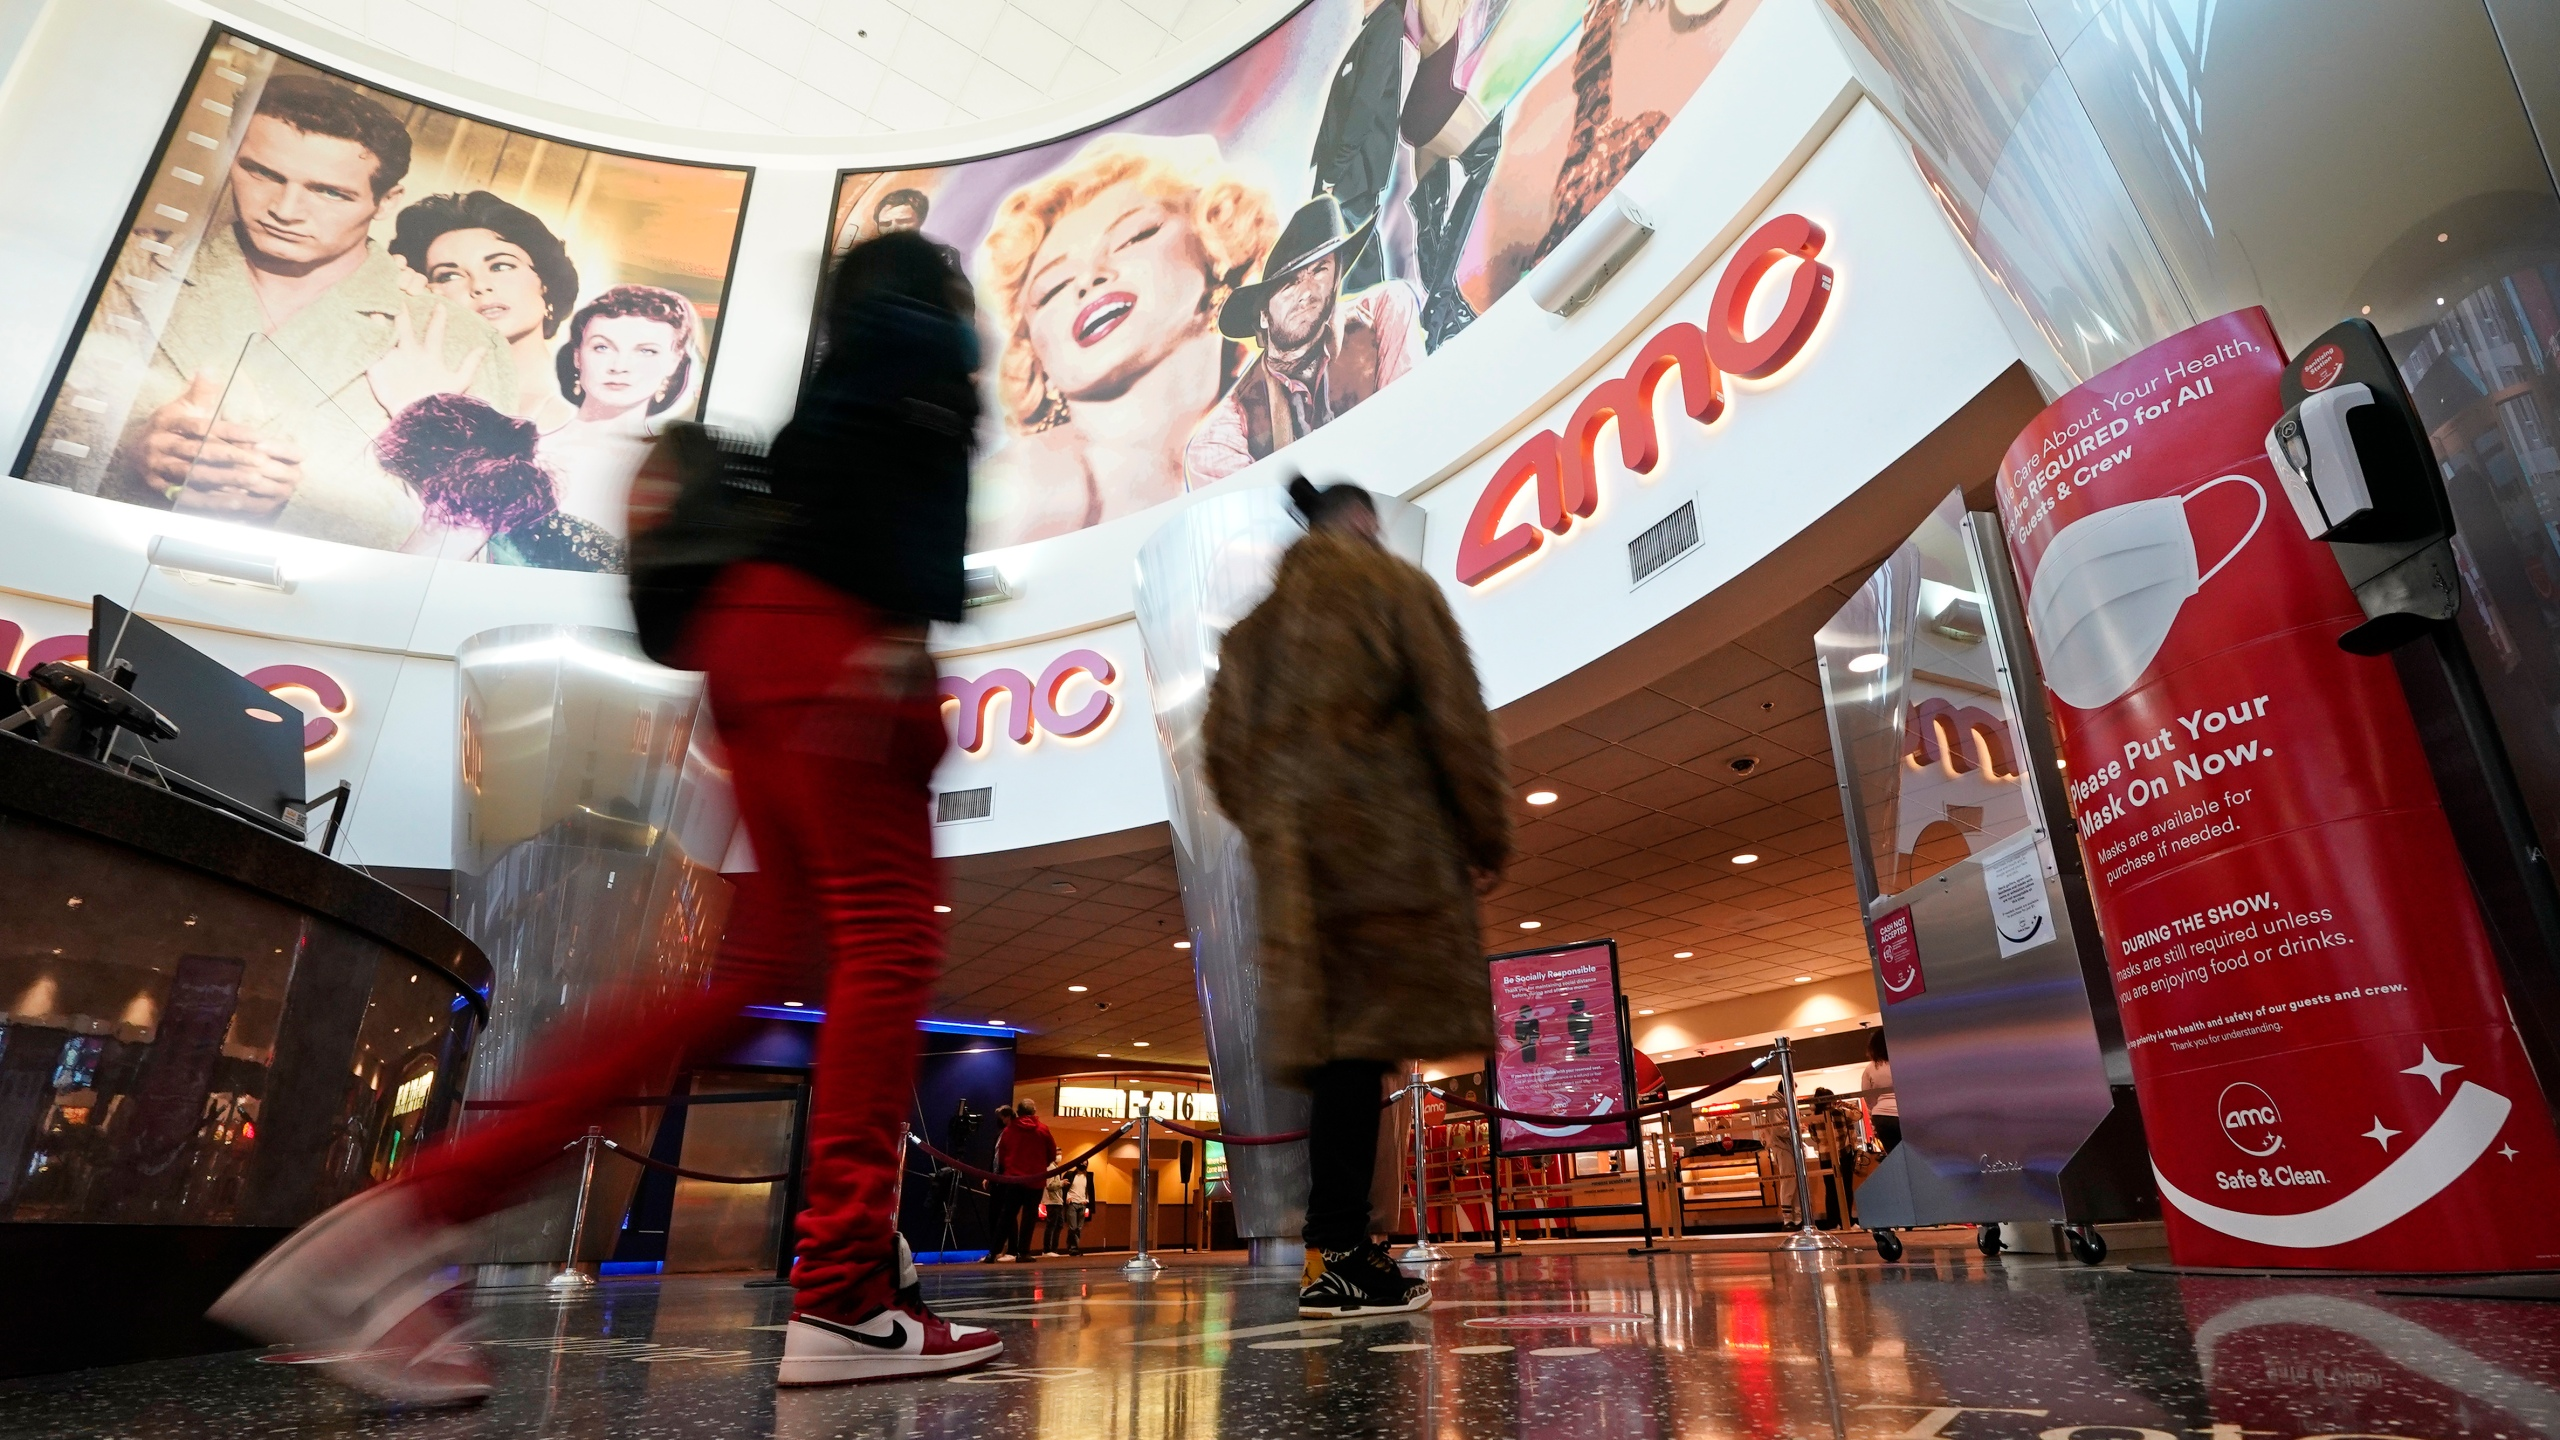 In this March 15, 2021, file photo movie patrons arrive to see a film at the AMC 16 theater in Burbank, Calif. AMC is looking to sell up to 11.5 million of its shares, as the movie theater operator looks to capitalize on its meme stock popularity. The announcement in a regulatory filing on Thursday, June 3 comes just two days after the company said it was raising $230.5 million through an 8.5 million share sale. (AP Photo/Mark J. Terrill, File)